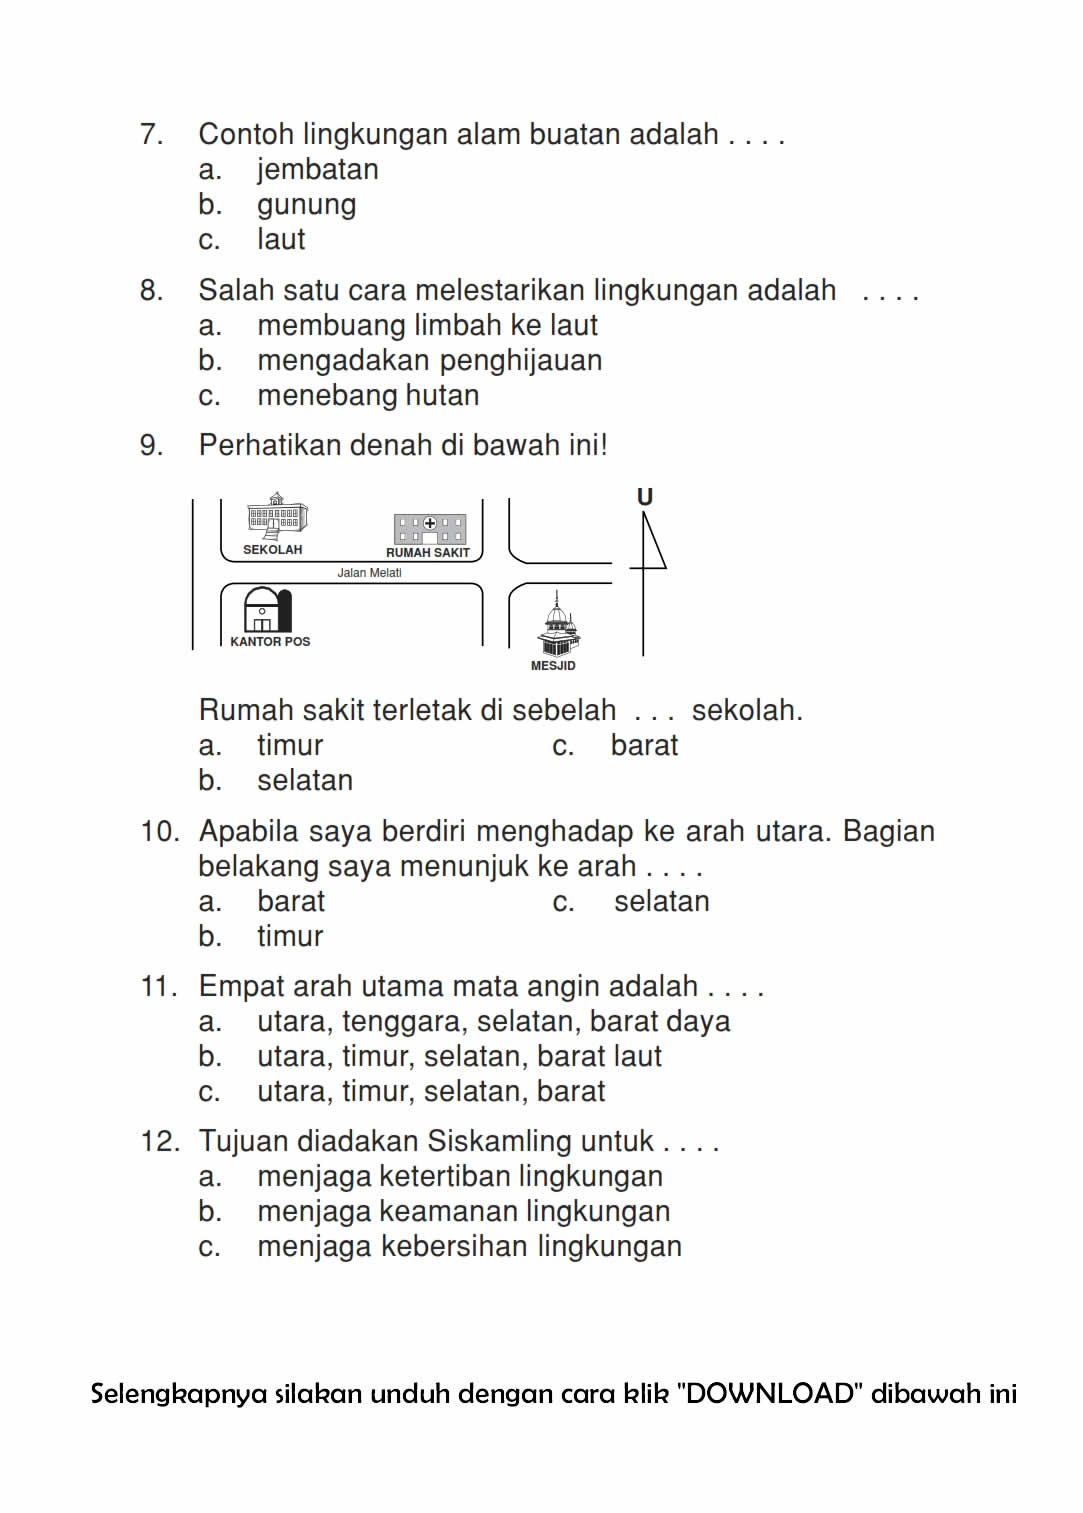 Download Soal Ips Uas Ganjil Kelas 3 Semester 1 2015 2016 Rief Awa Blog Download Kumpulan